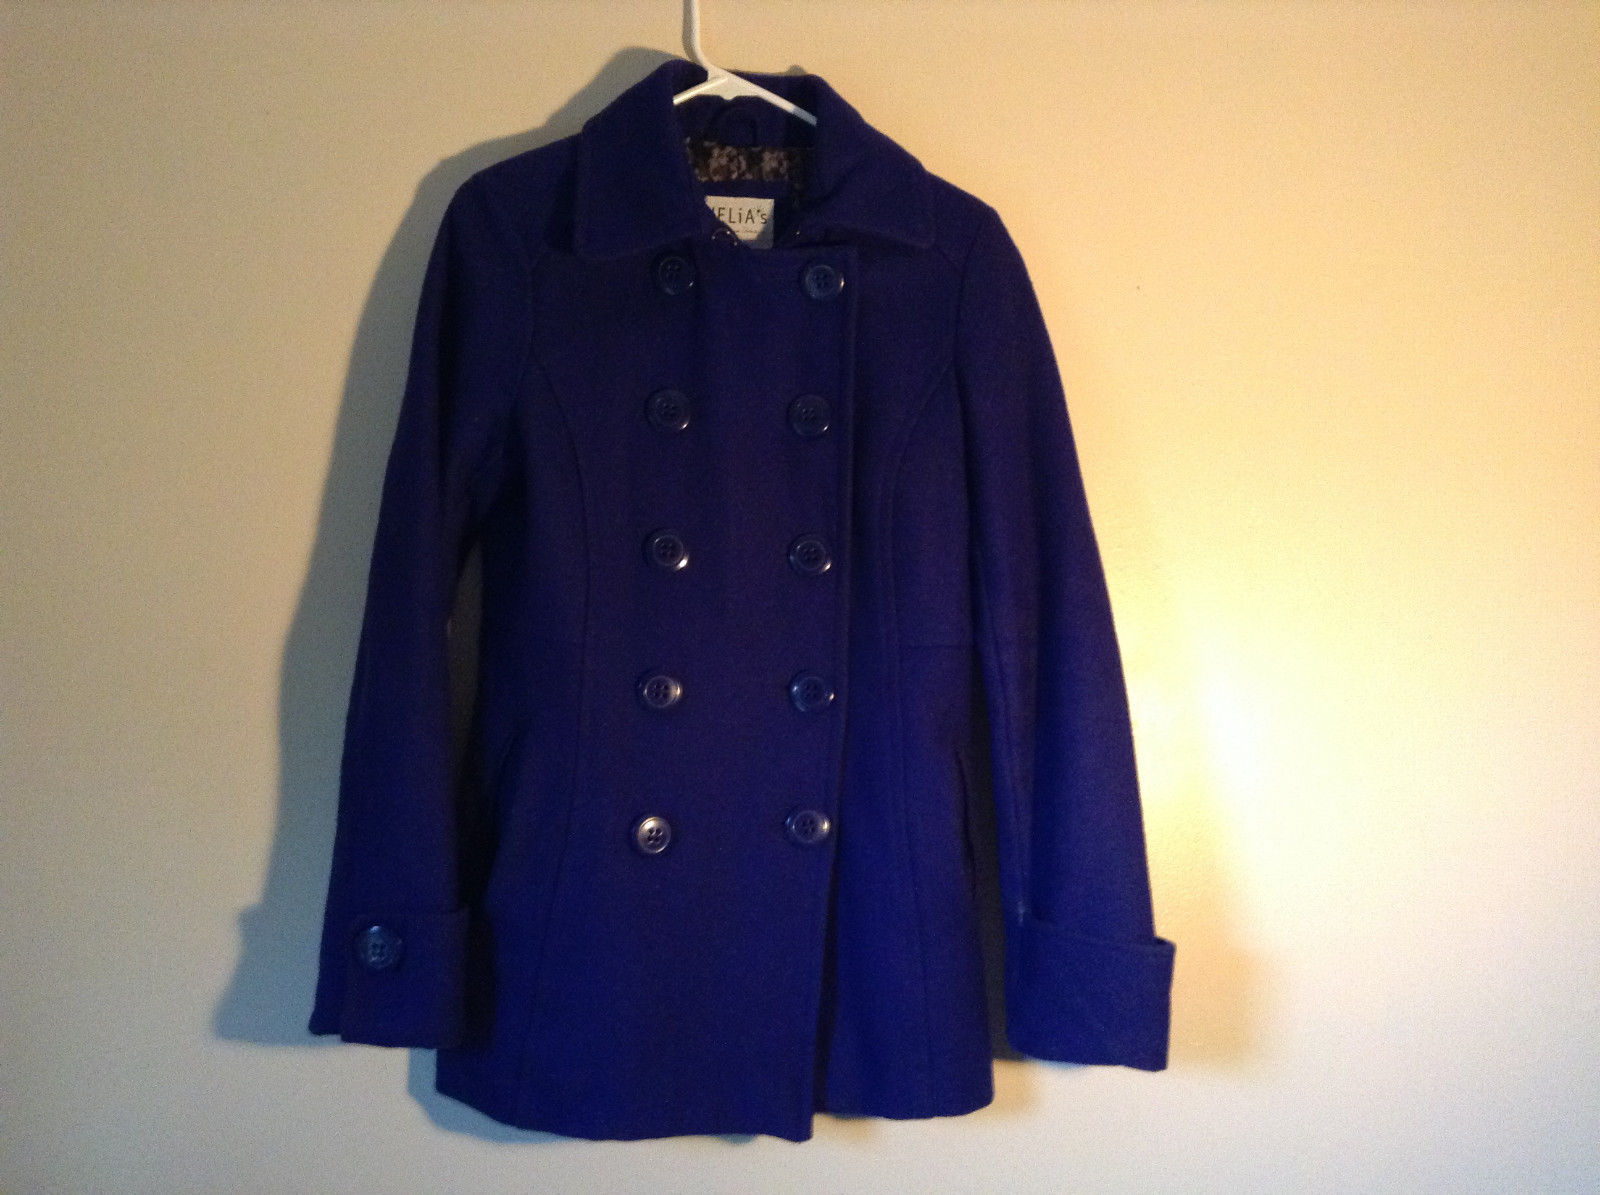 Blue Coat by Delias Size M Pockets Thinsulate Insulation Cuffed Sleeves